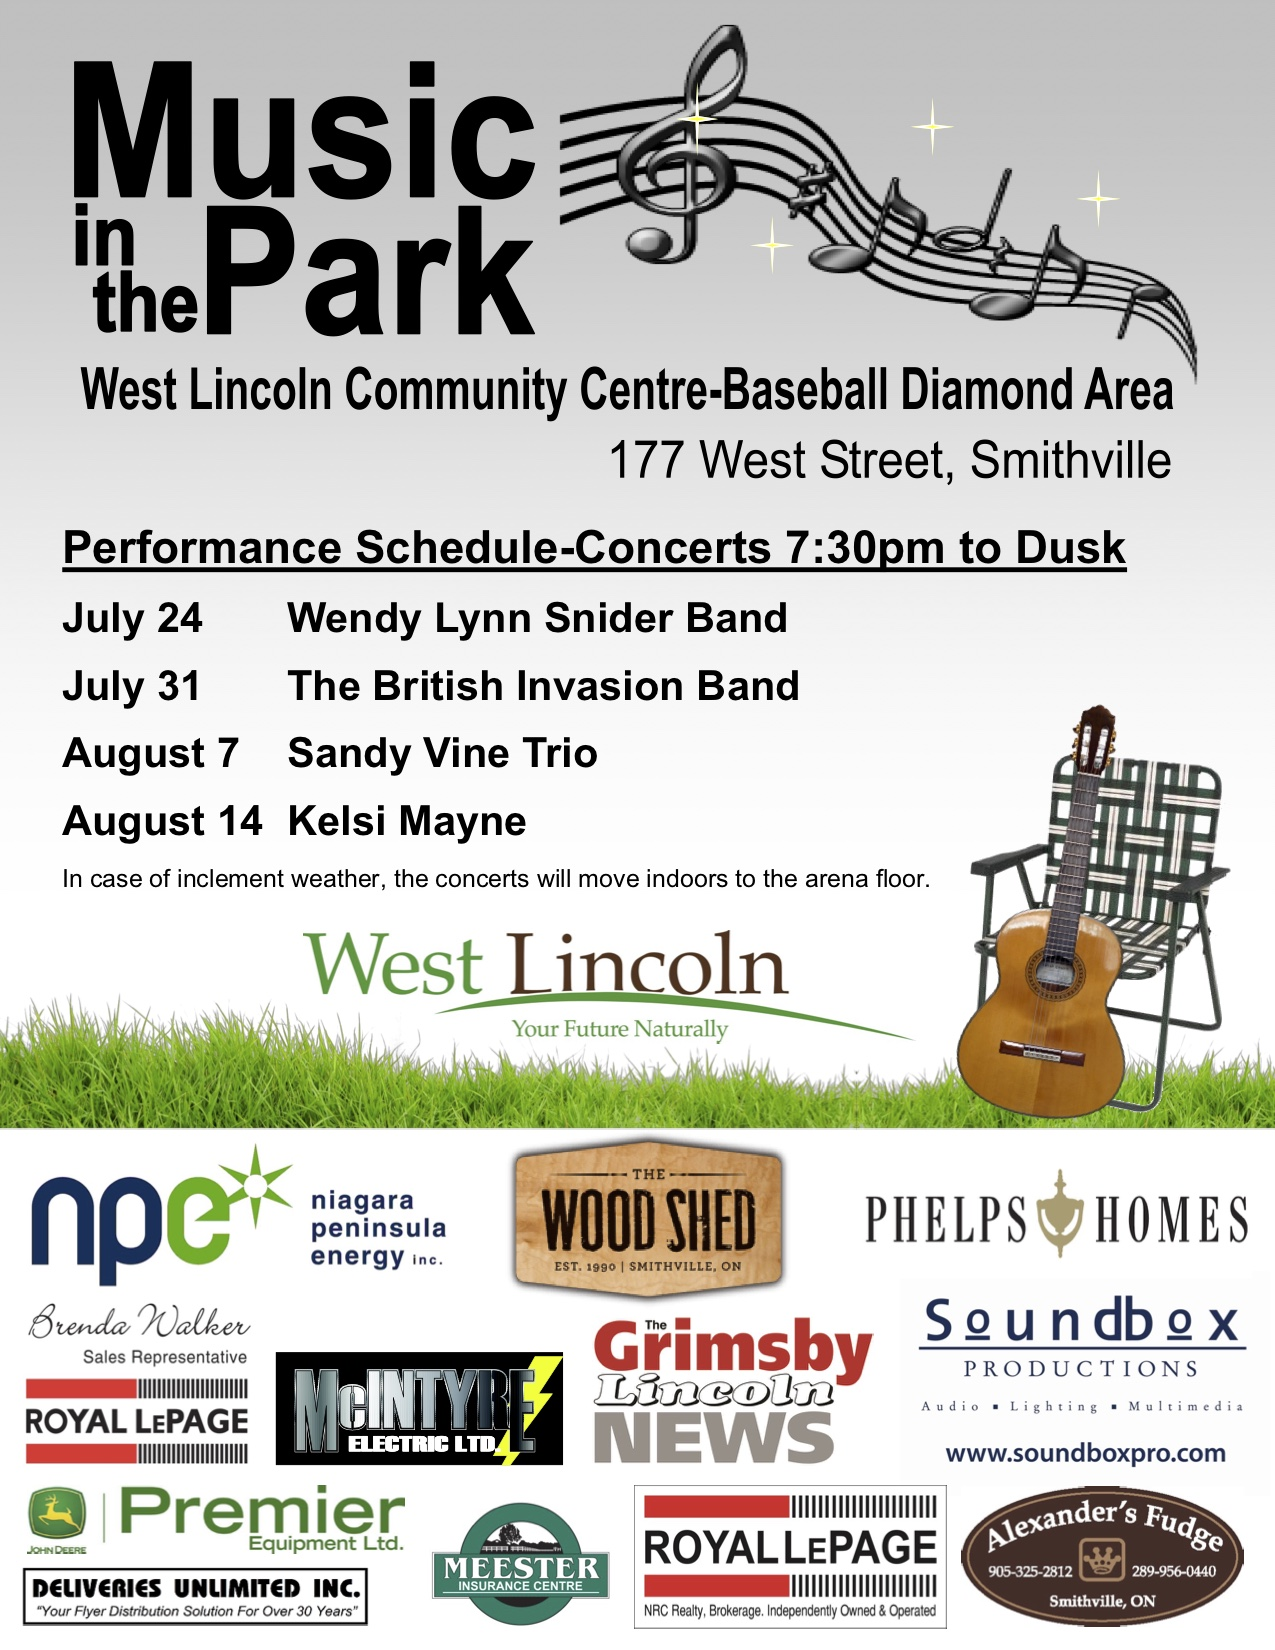 Music-in-the-Park-Flyer-website.jpg